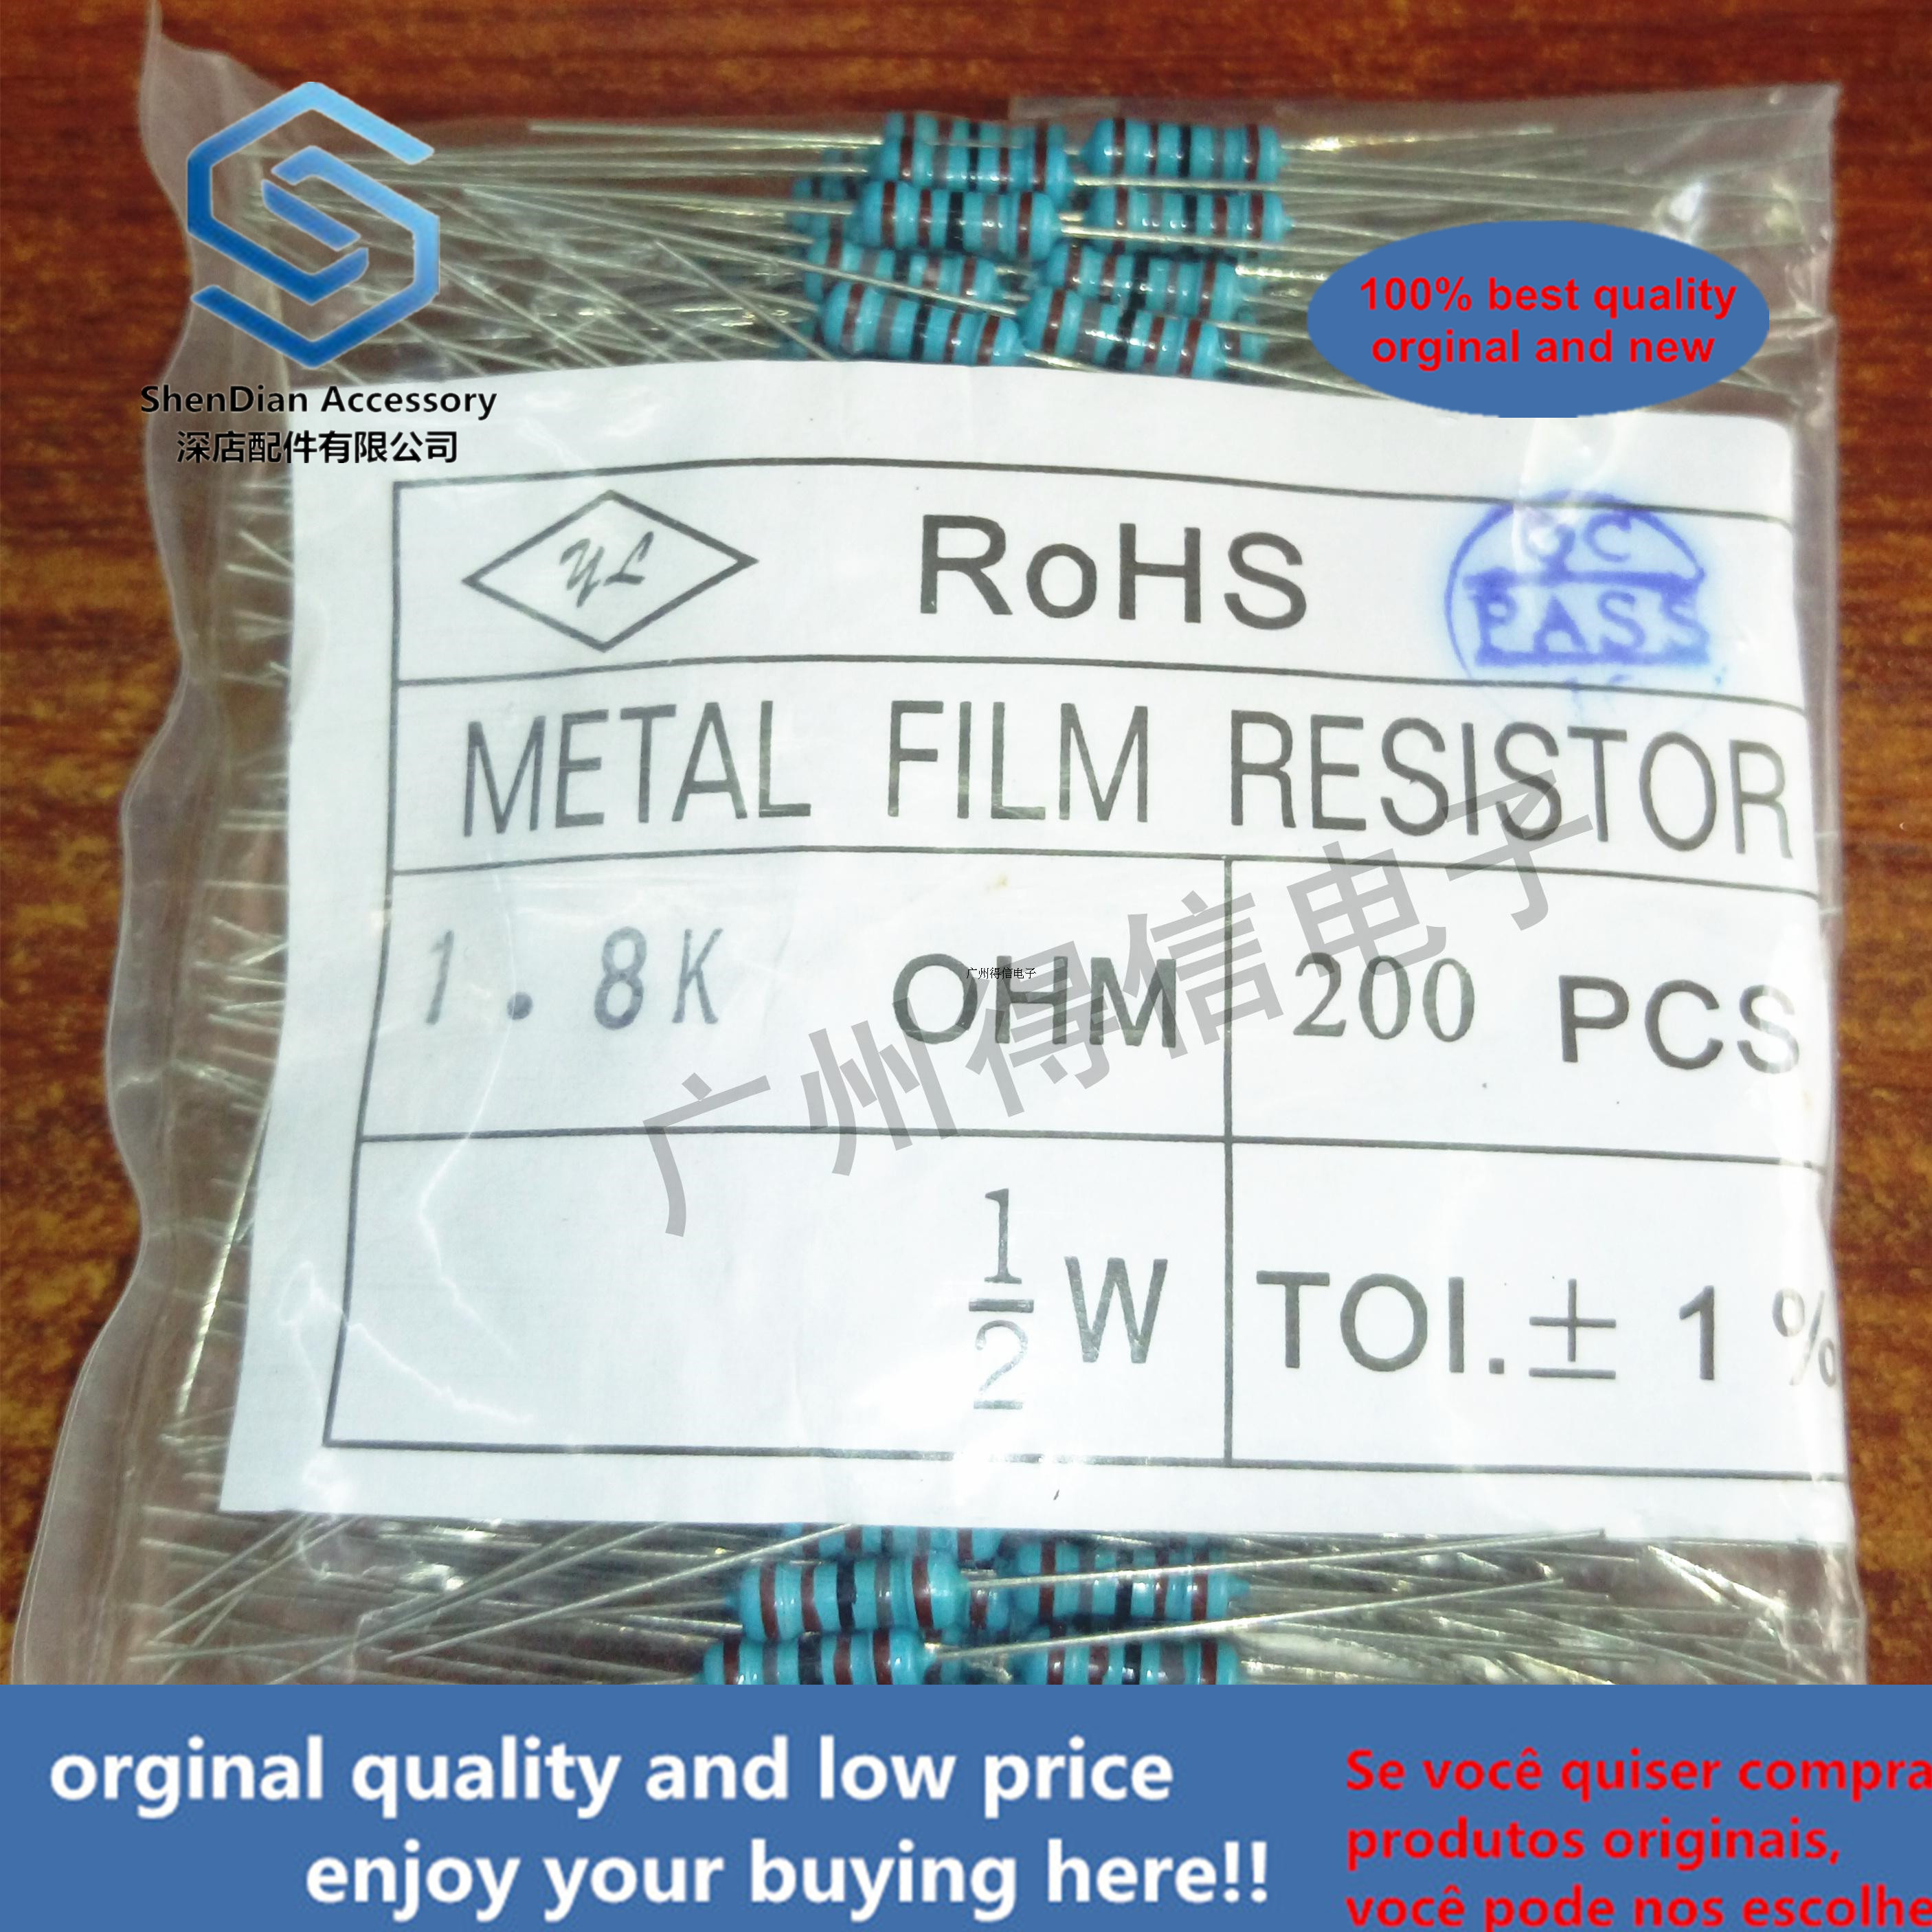 200pcs 1 / 2W 390R 390 Euro 1% Brand New Metal Film Iron Feet Resistor Bag 200 Pcs Per Pack